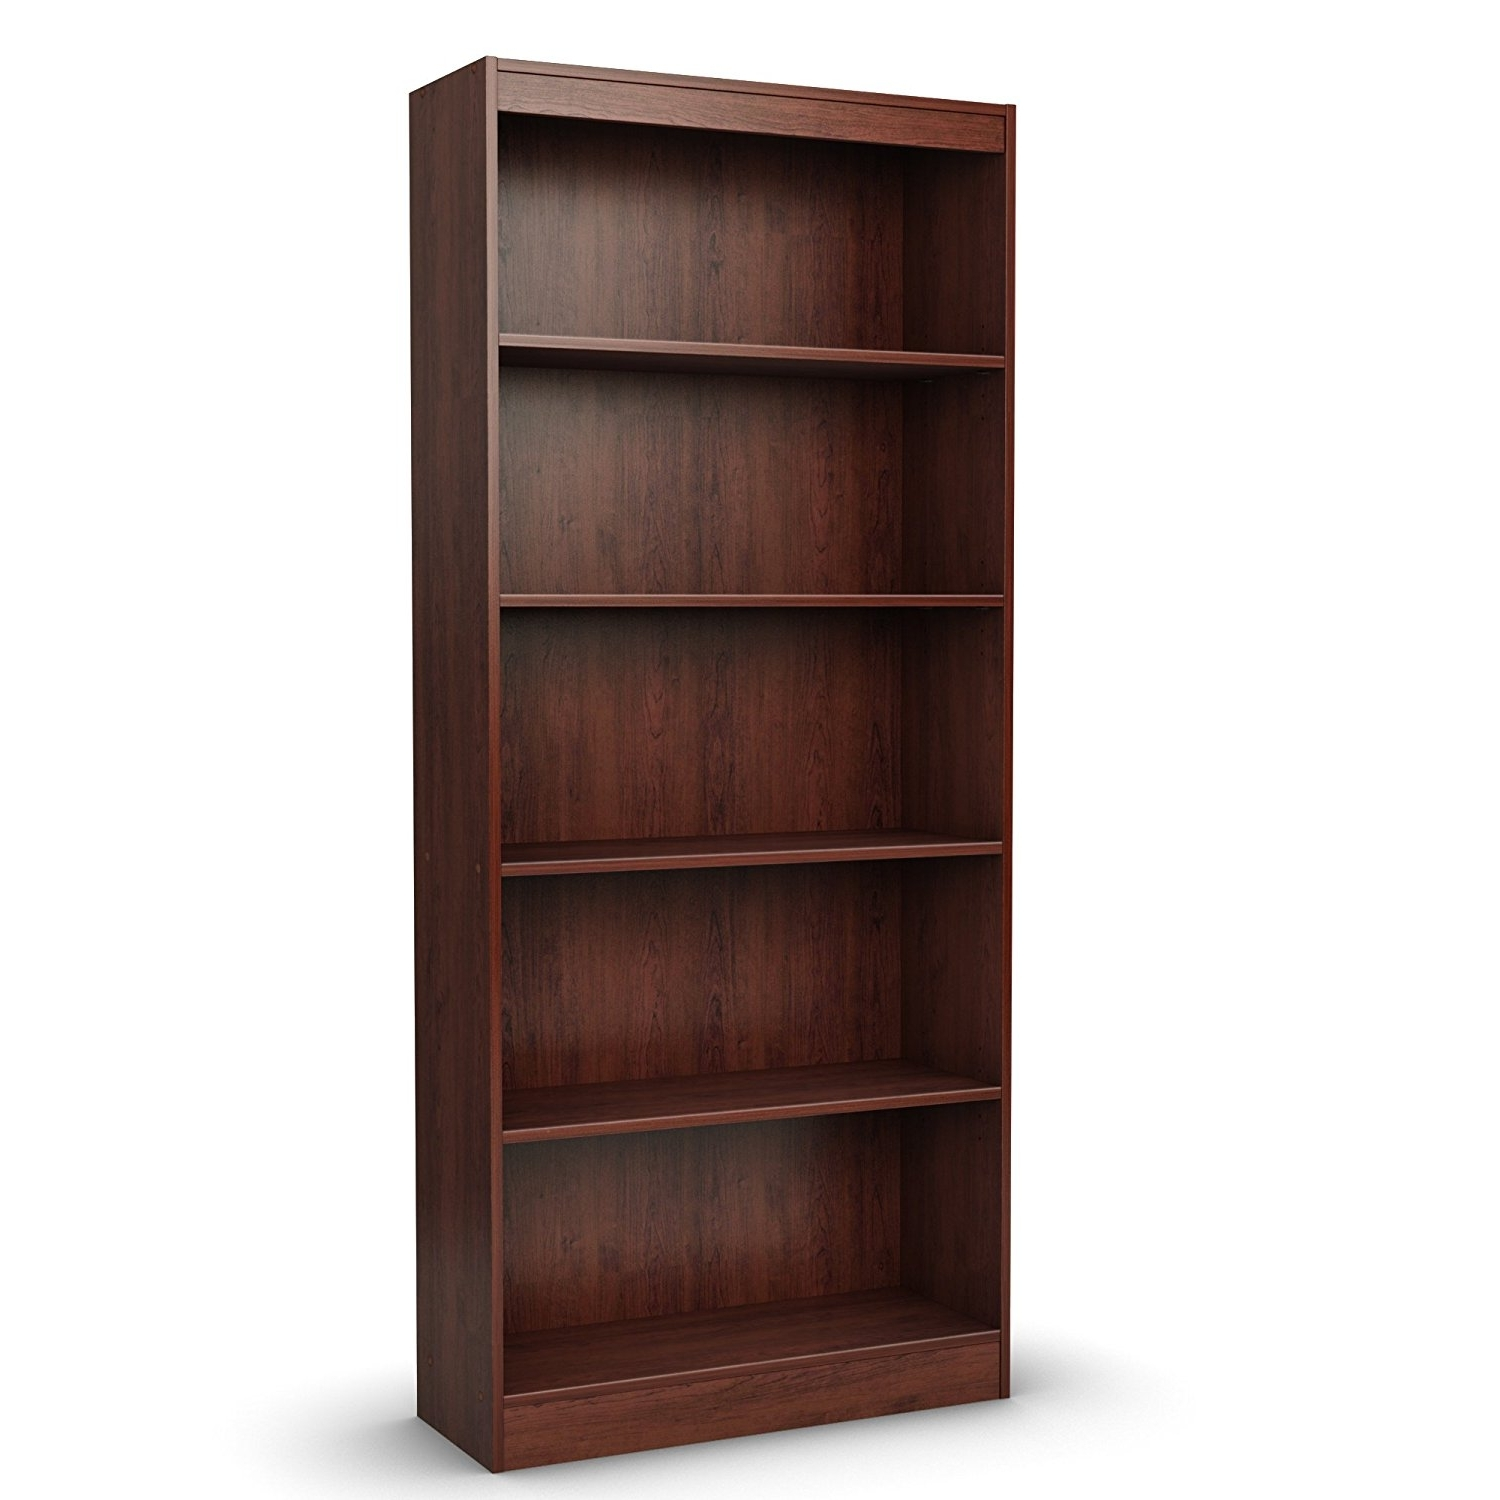 Amazon: South Shore Axess Collection 5 Shelf Bookcase, Royal Pertaining To Well Known Real Wood Bookcases (View 5 of 15)